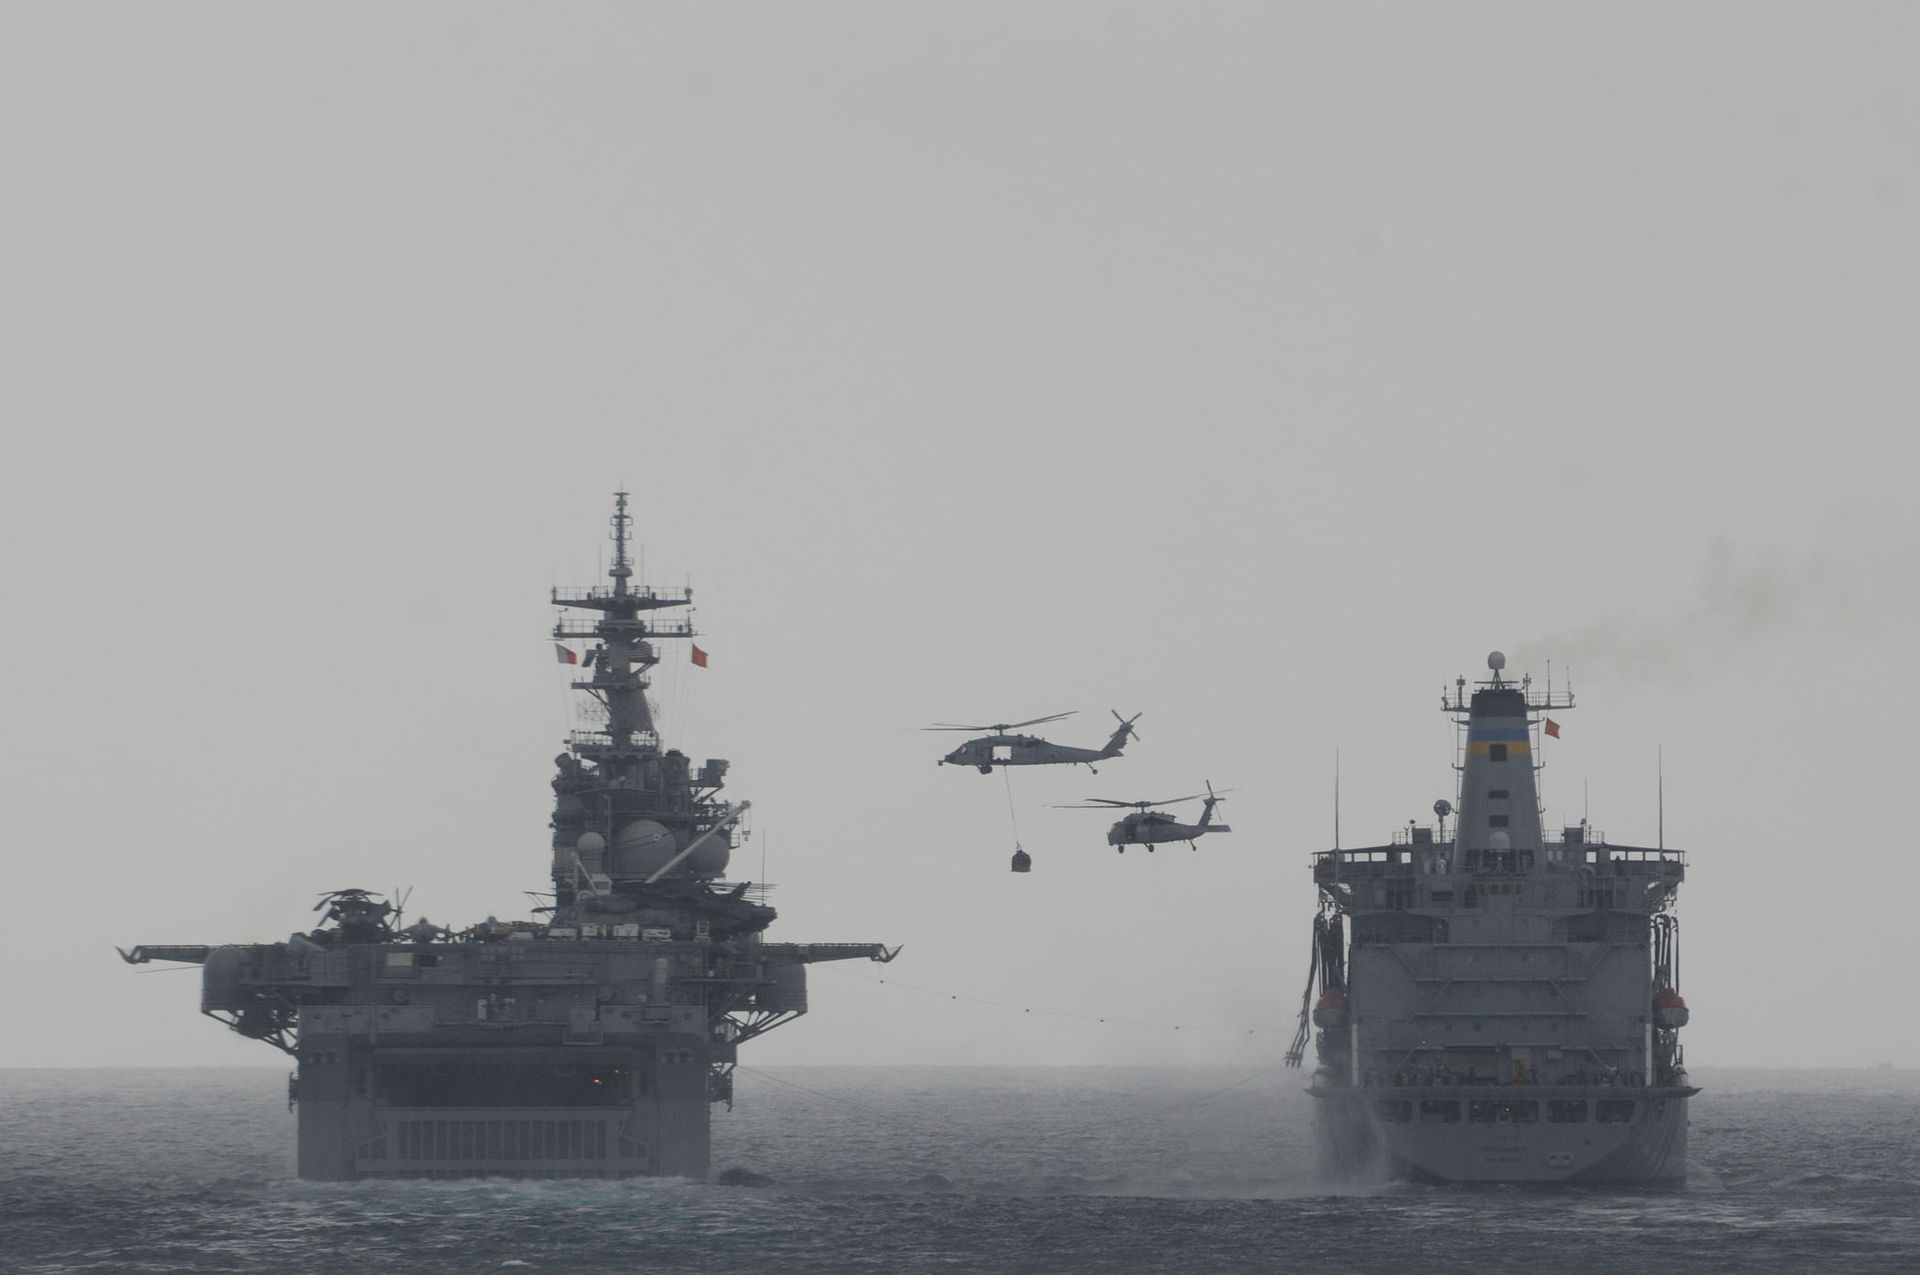 https://upload.wikimedia.org/wikipedia/commons/thumb/c/c6/MH-60S_Seahawk_helicopters_transfer_supplies_during_a_vertical_replenishment_between_the_amphibious_assault_ship_USS_Boxer_%28LHD_4%29%2C_left%2C_and_the_fleet_replenishment_oiler_USNS_Rappahannock_%28T-AO_204%29_March_17_110317-N-RC734-183.jpg/1920px-thumbnail.jpg